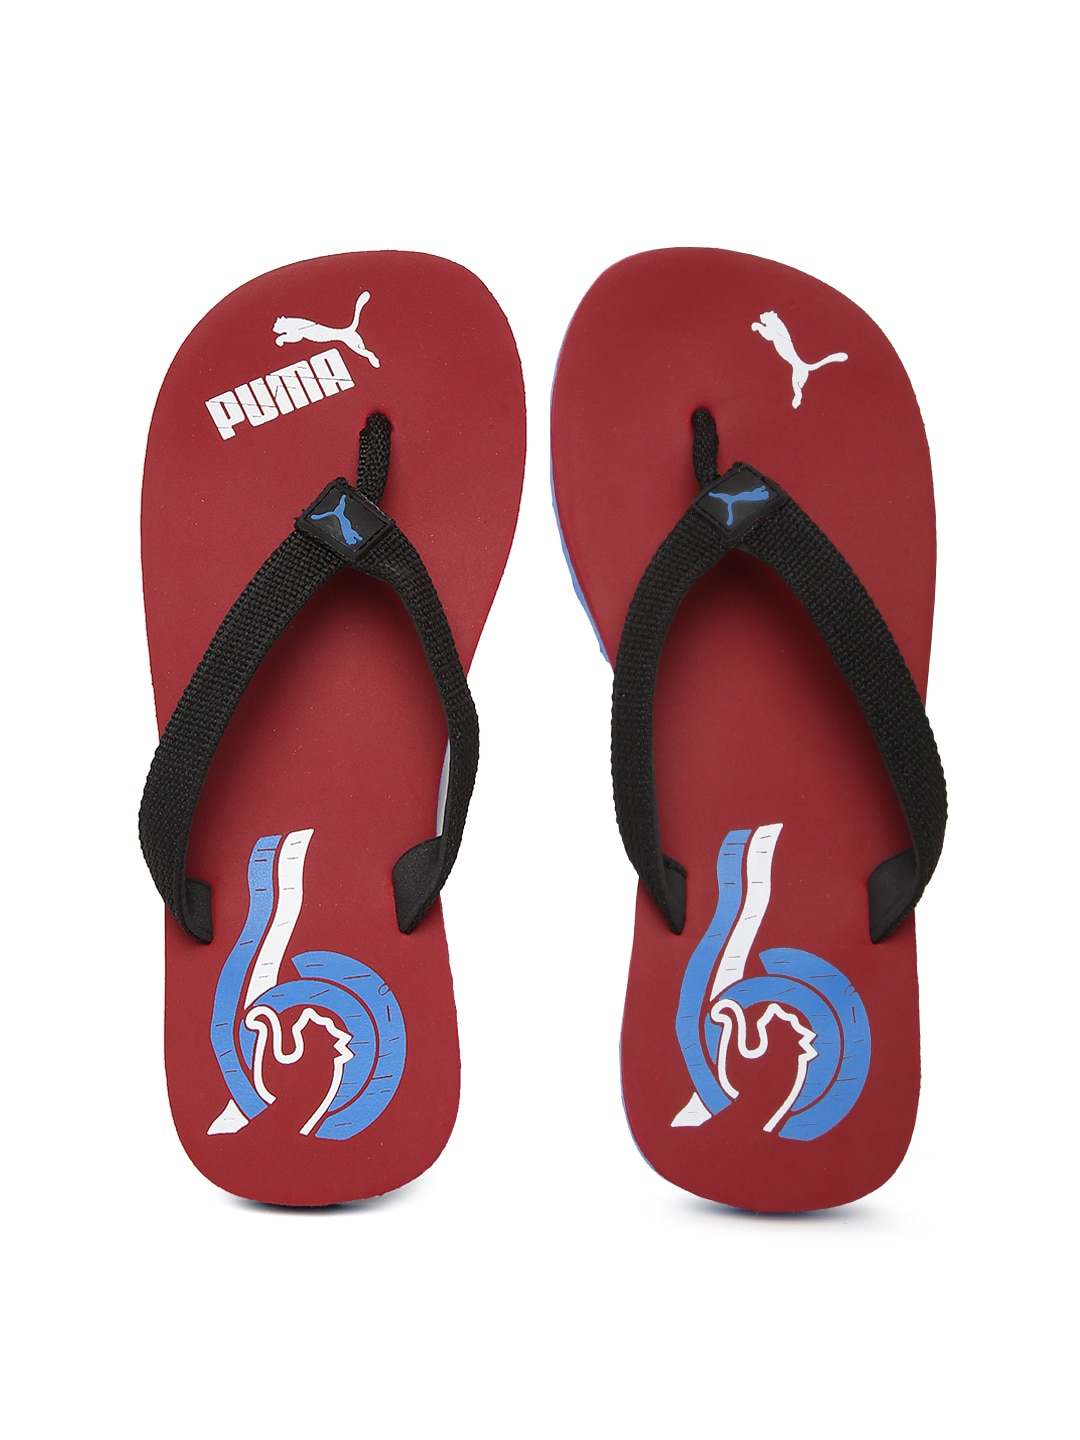 Men Footwear Puma Flip Flops - Buy Men Footwear Puma Flip Flops online in  India 2a23004c5